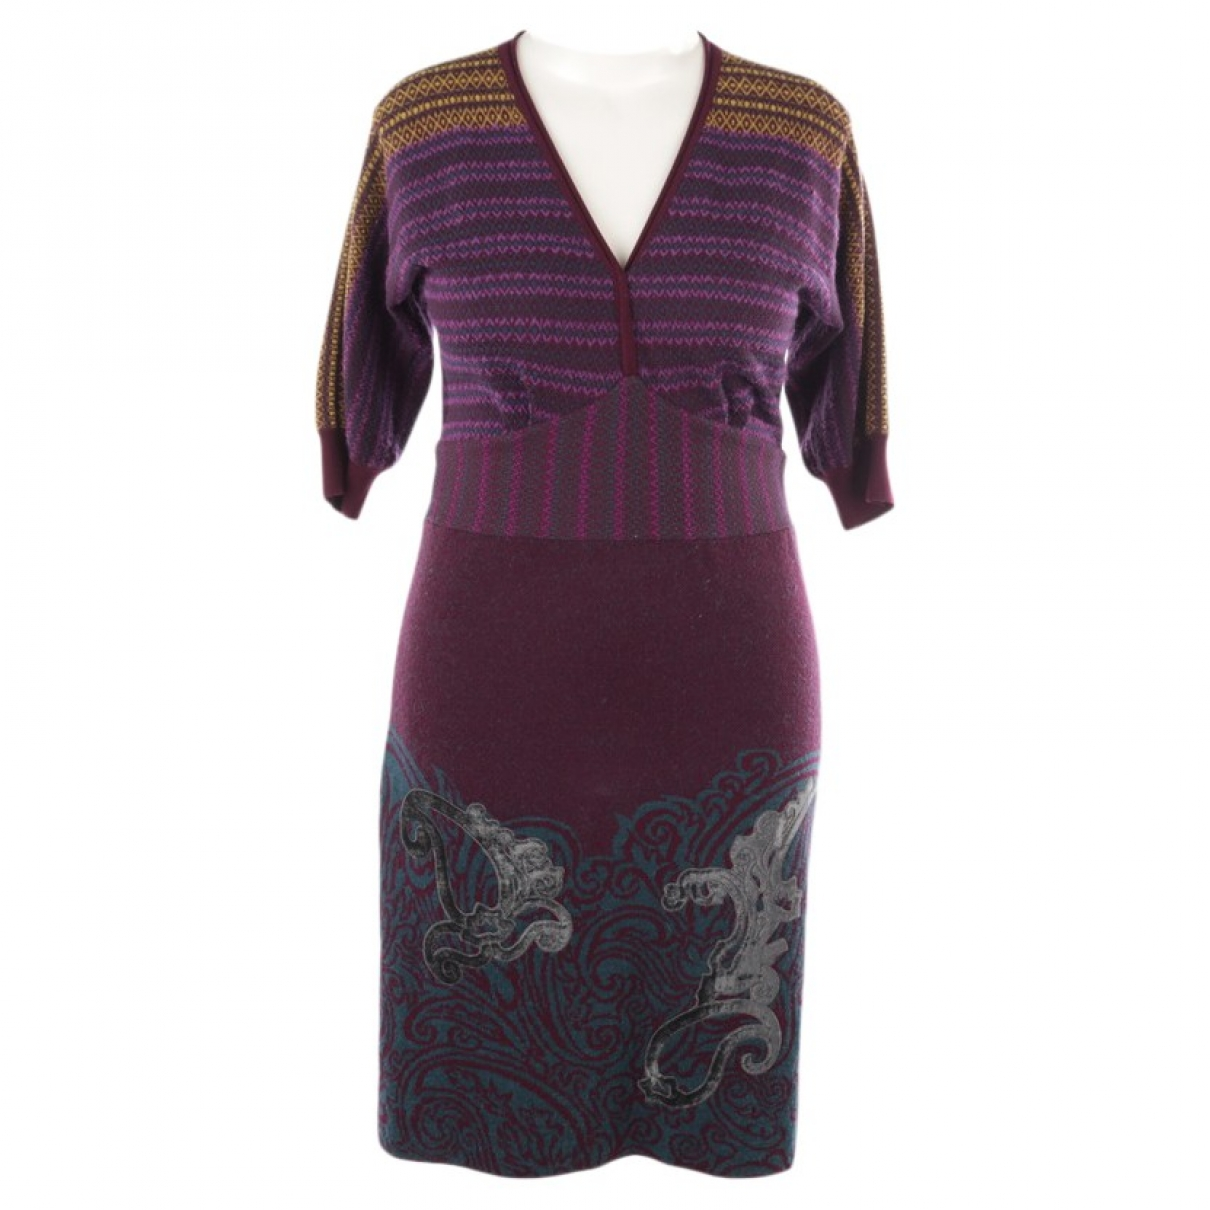 Etro \N Purple Cotton dress for Women 40 FR